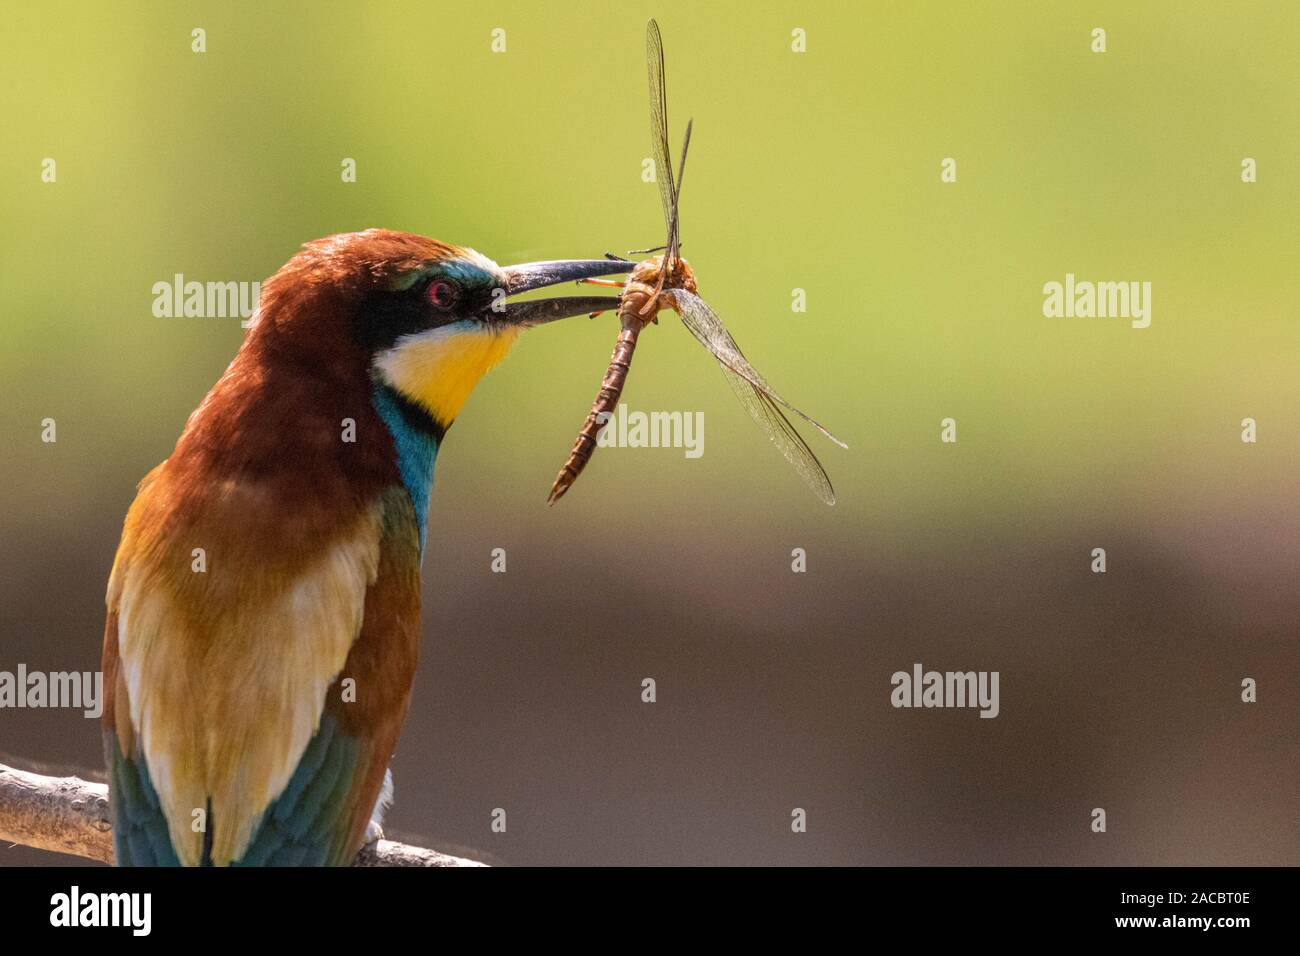 European bee-eater, Merops apiaster, sitting on a stick with a dragonfly in his beak, in nice warm morning light, Csongrad, Hungary Stock Photo